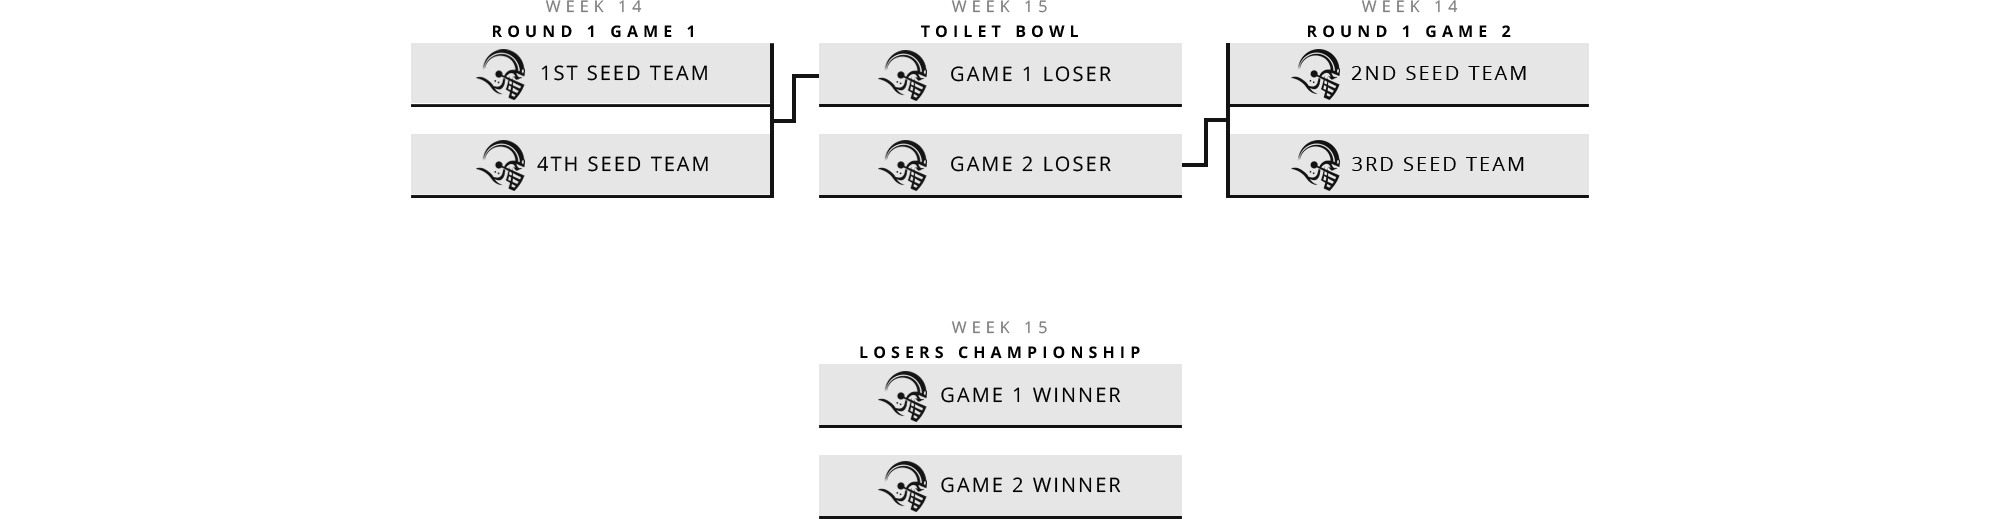 Toilet Bowl Bracket